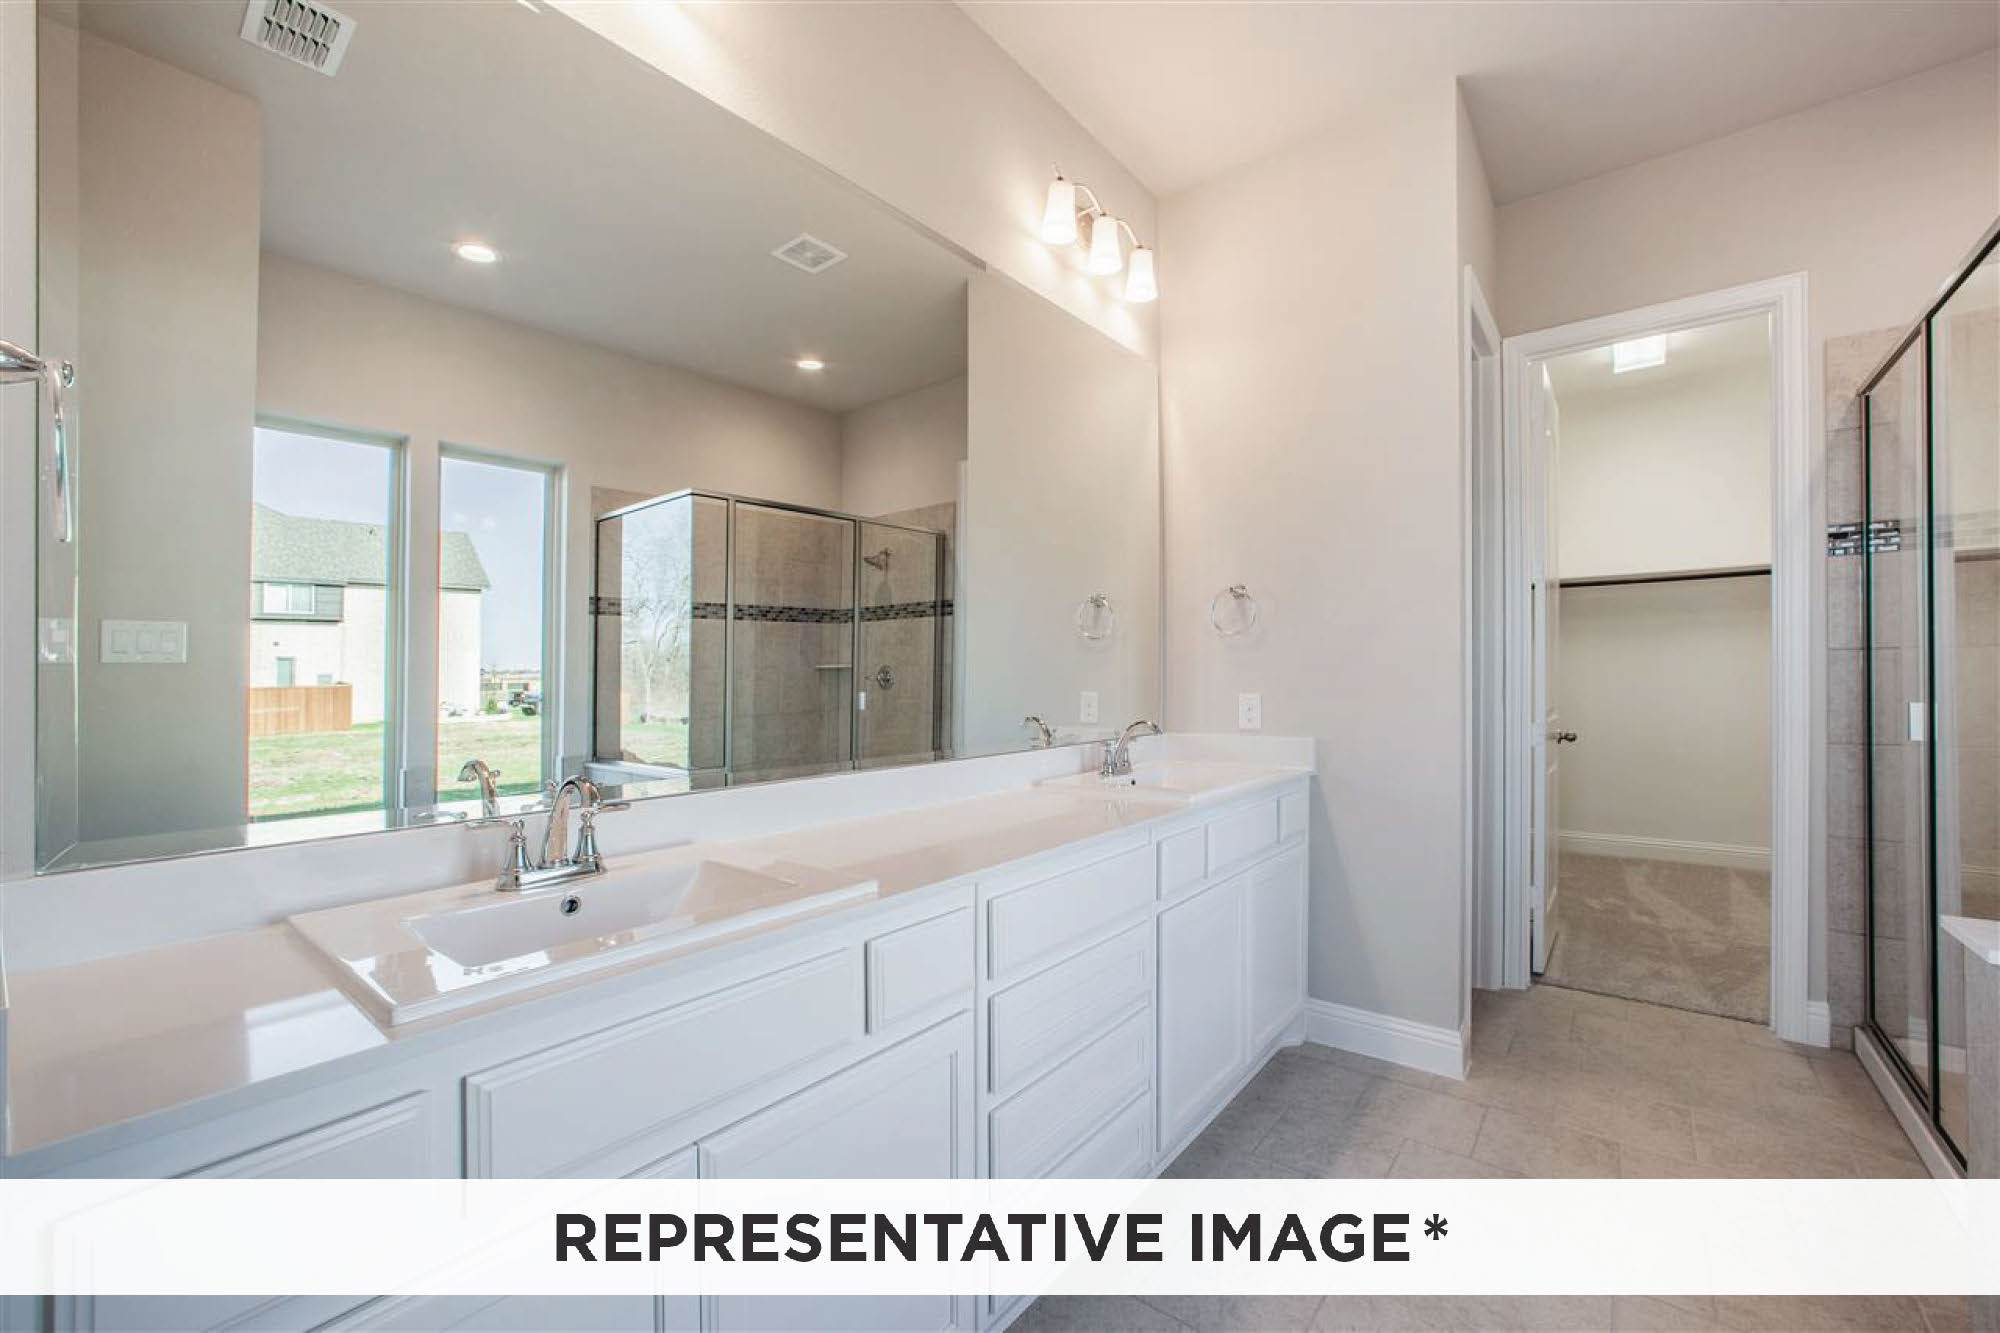 Bathroom featured in the Aria By Rendition Homes in Fort Worth, TX